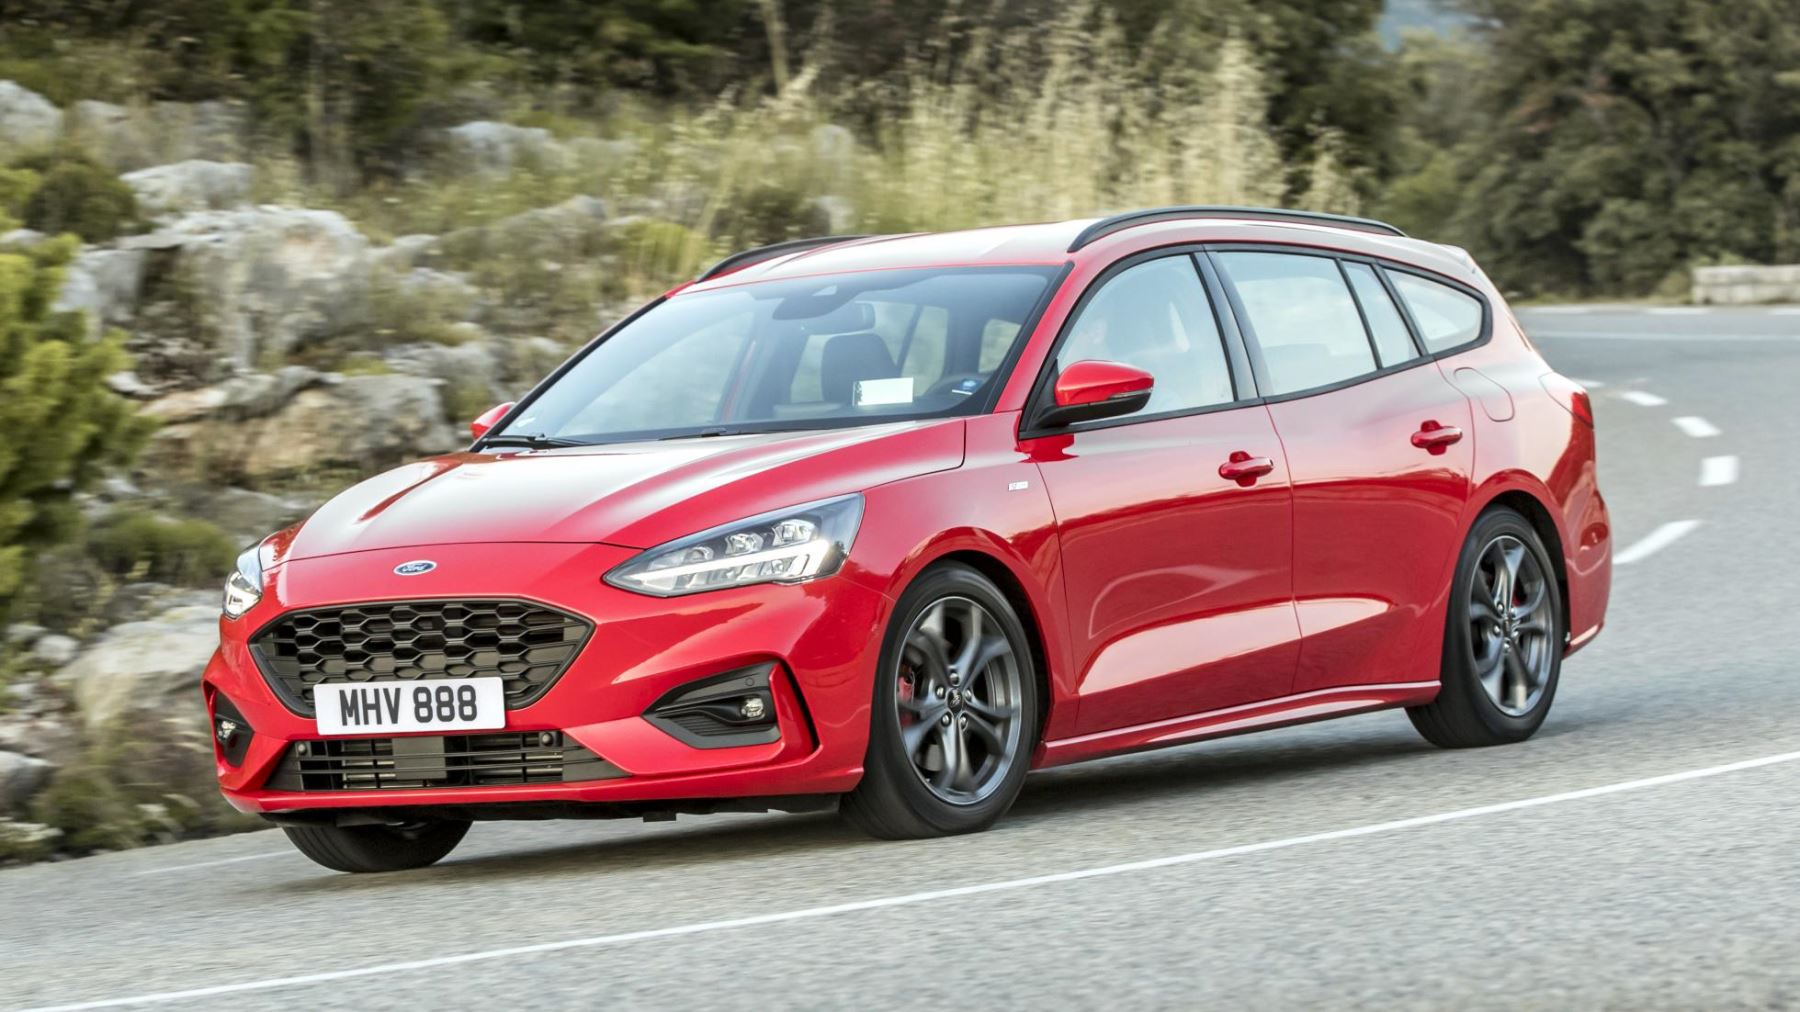 Ford Focus Active X 1.5 Diesel 120ps image 3